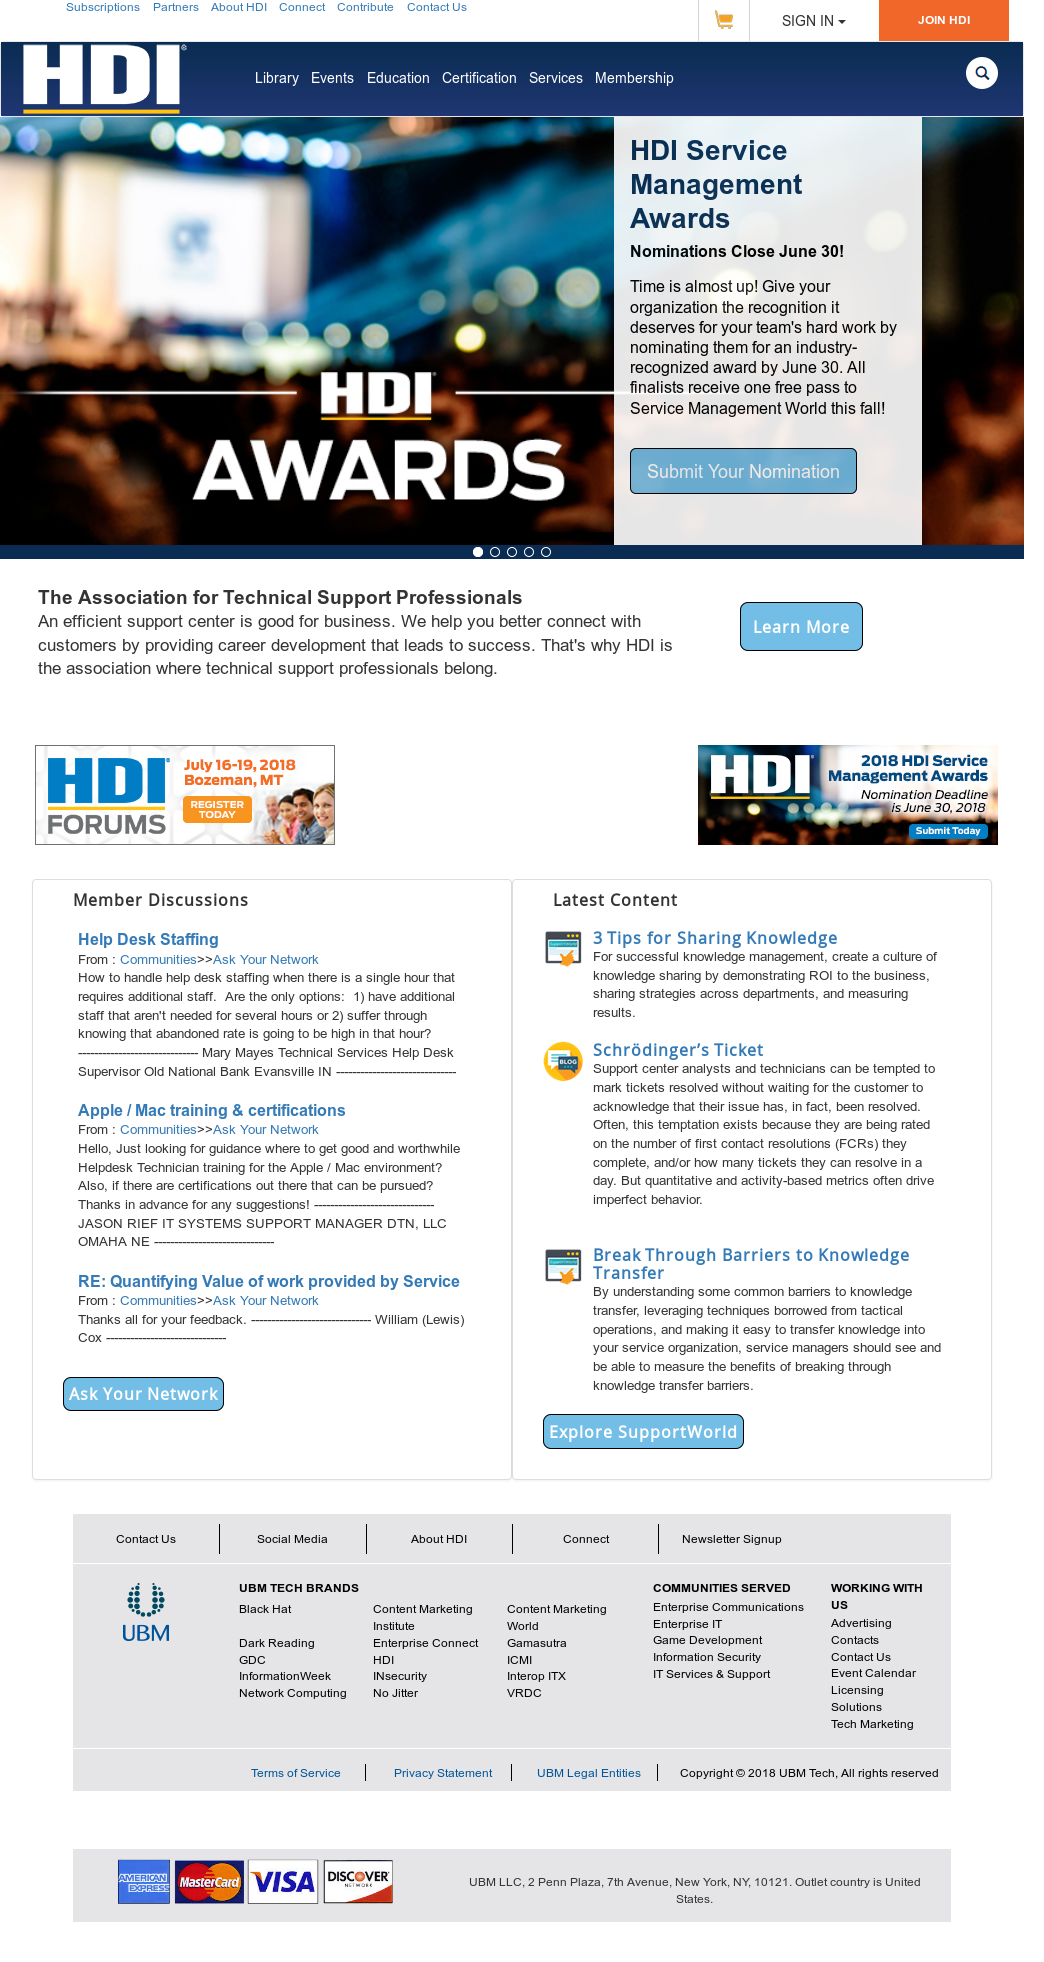 HDI Competitors, Revenue and Employees - Owler Company Profile